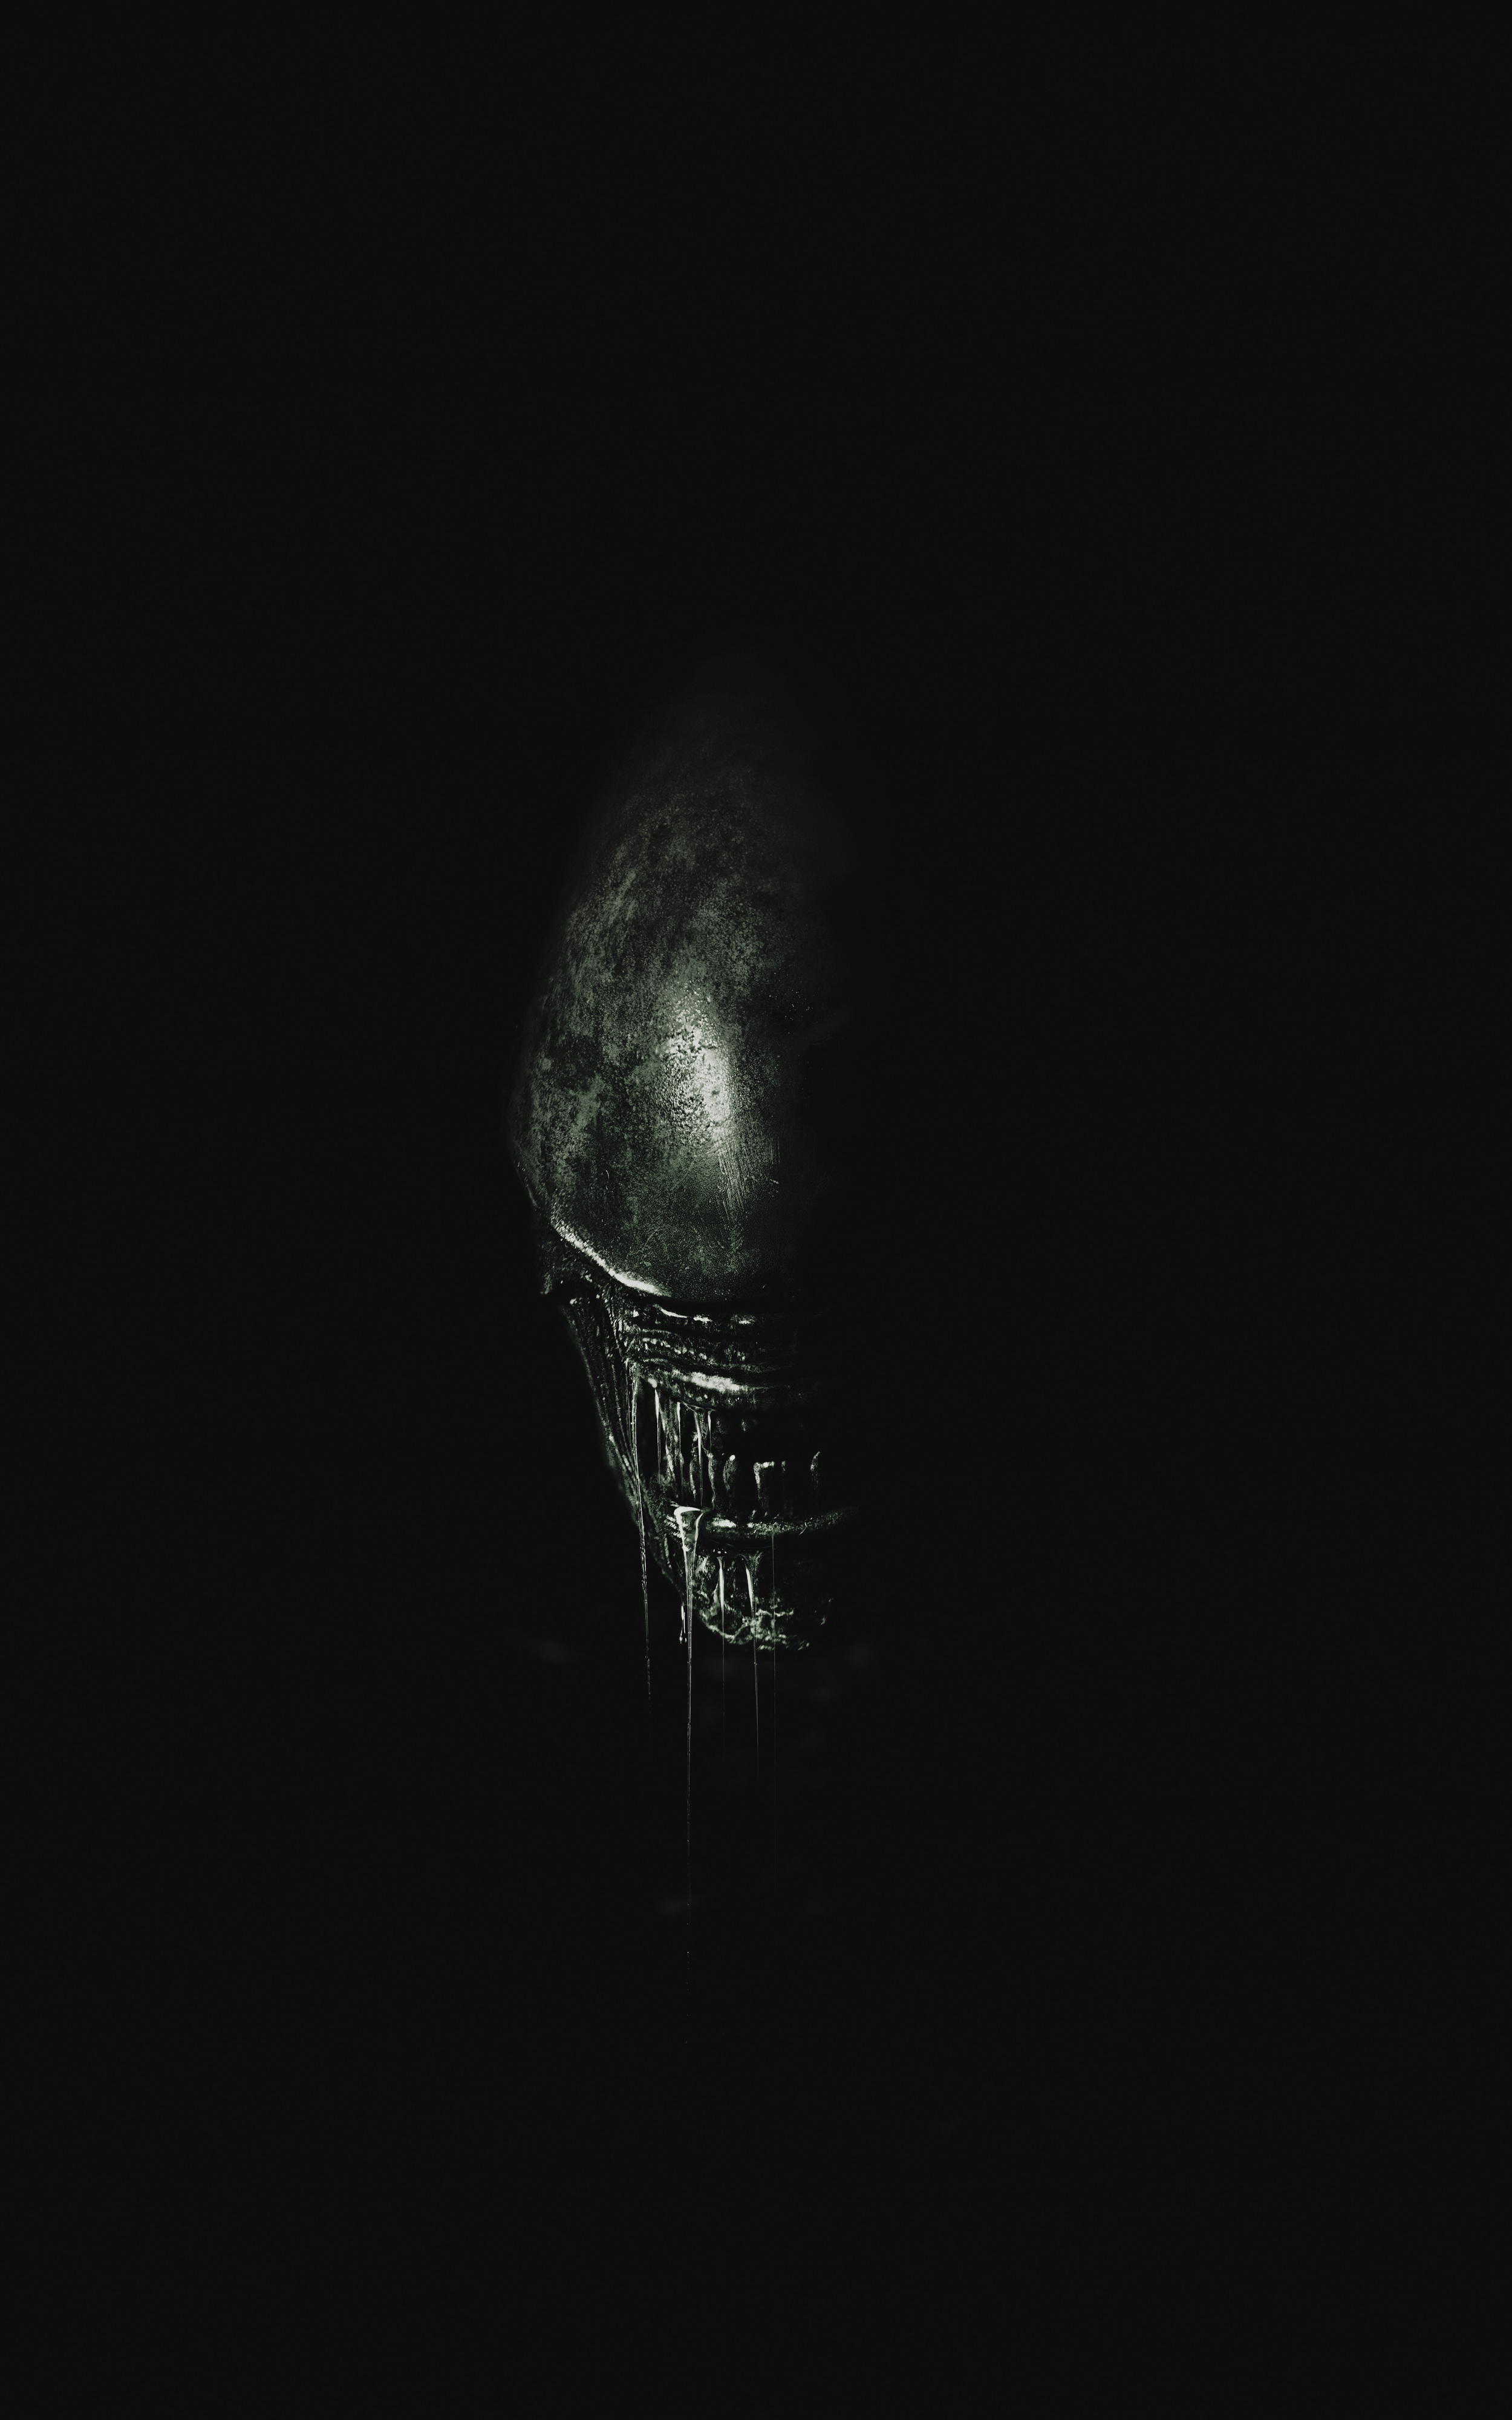 Alien Covenant 2347747 Hd Wallpaper Backgrounds Download